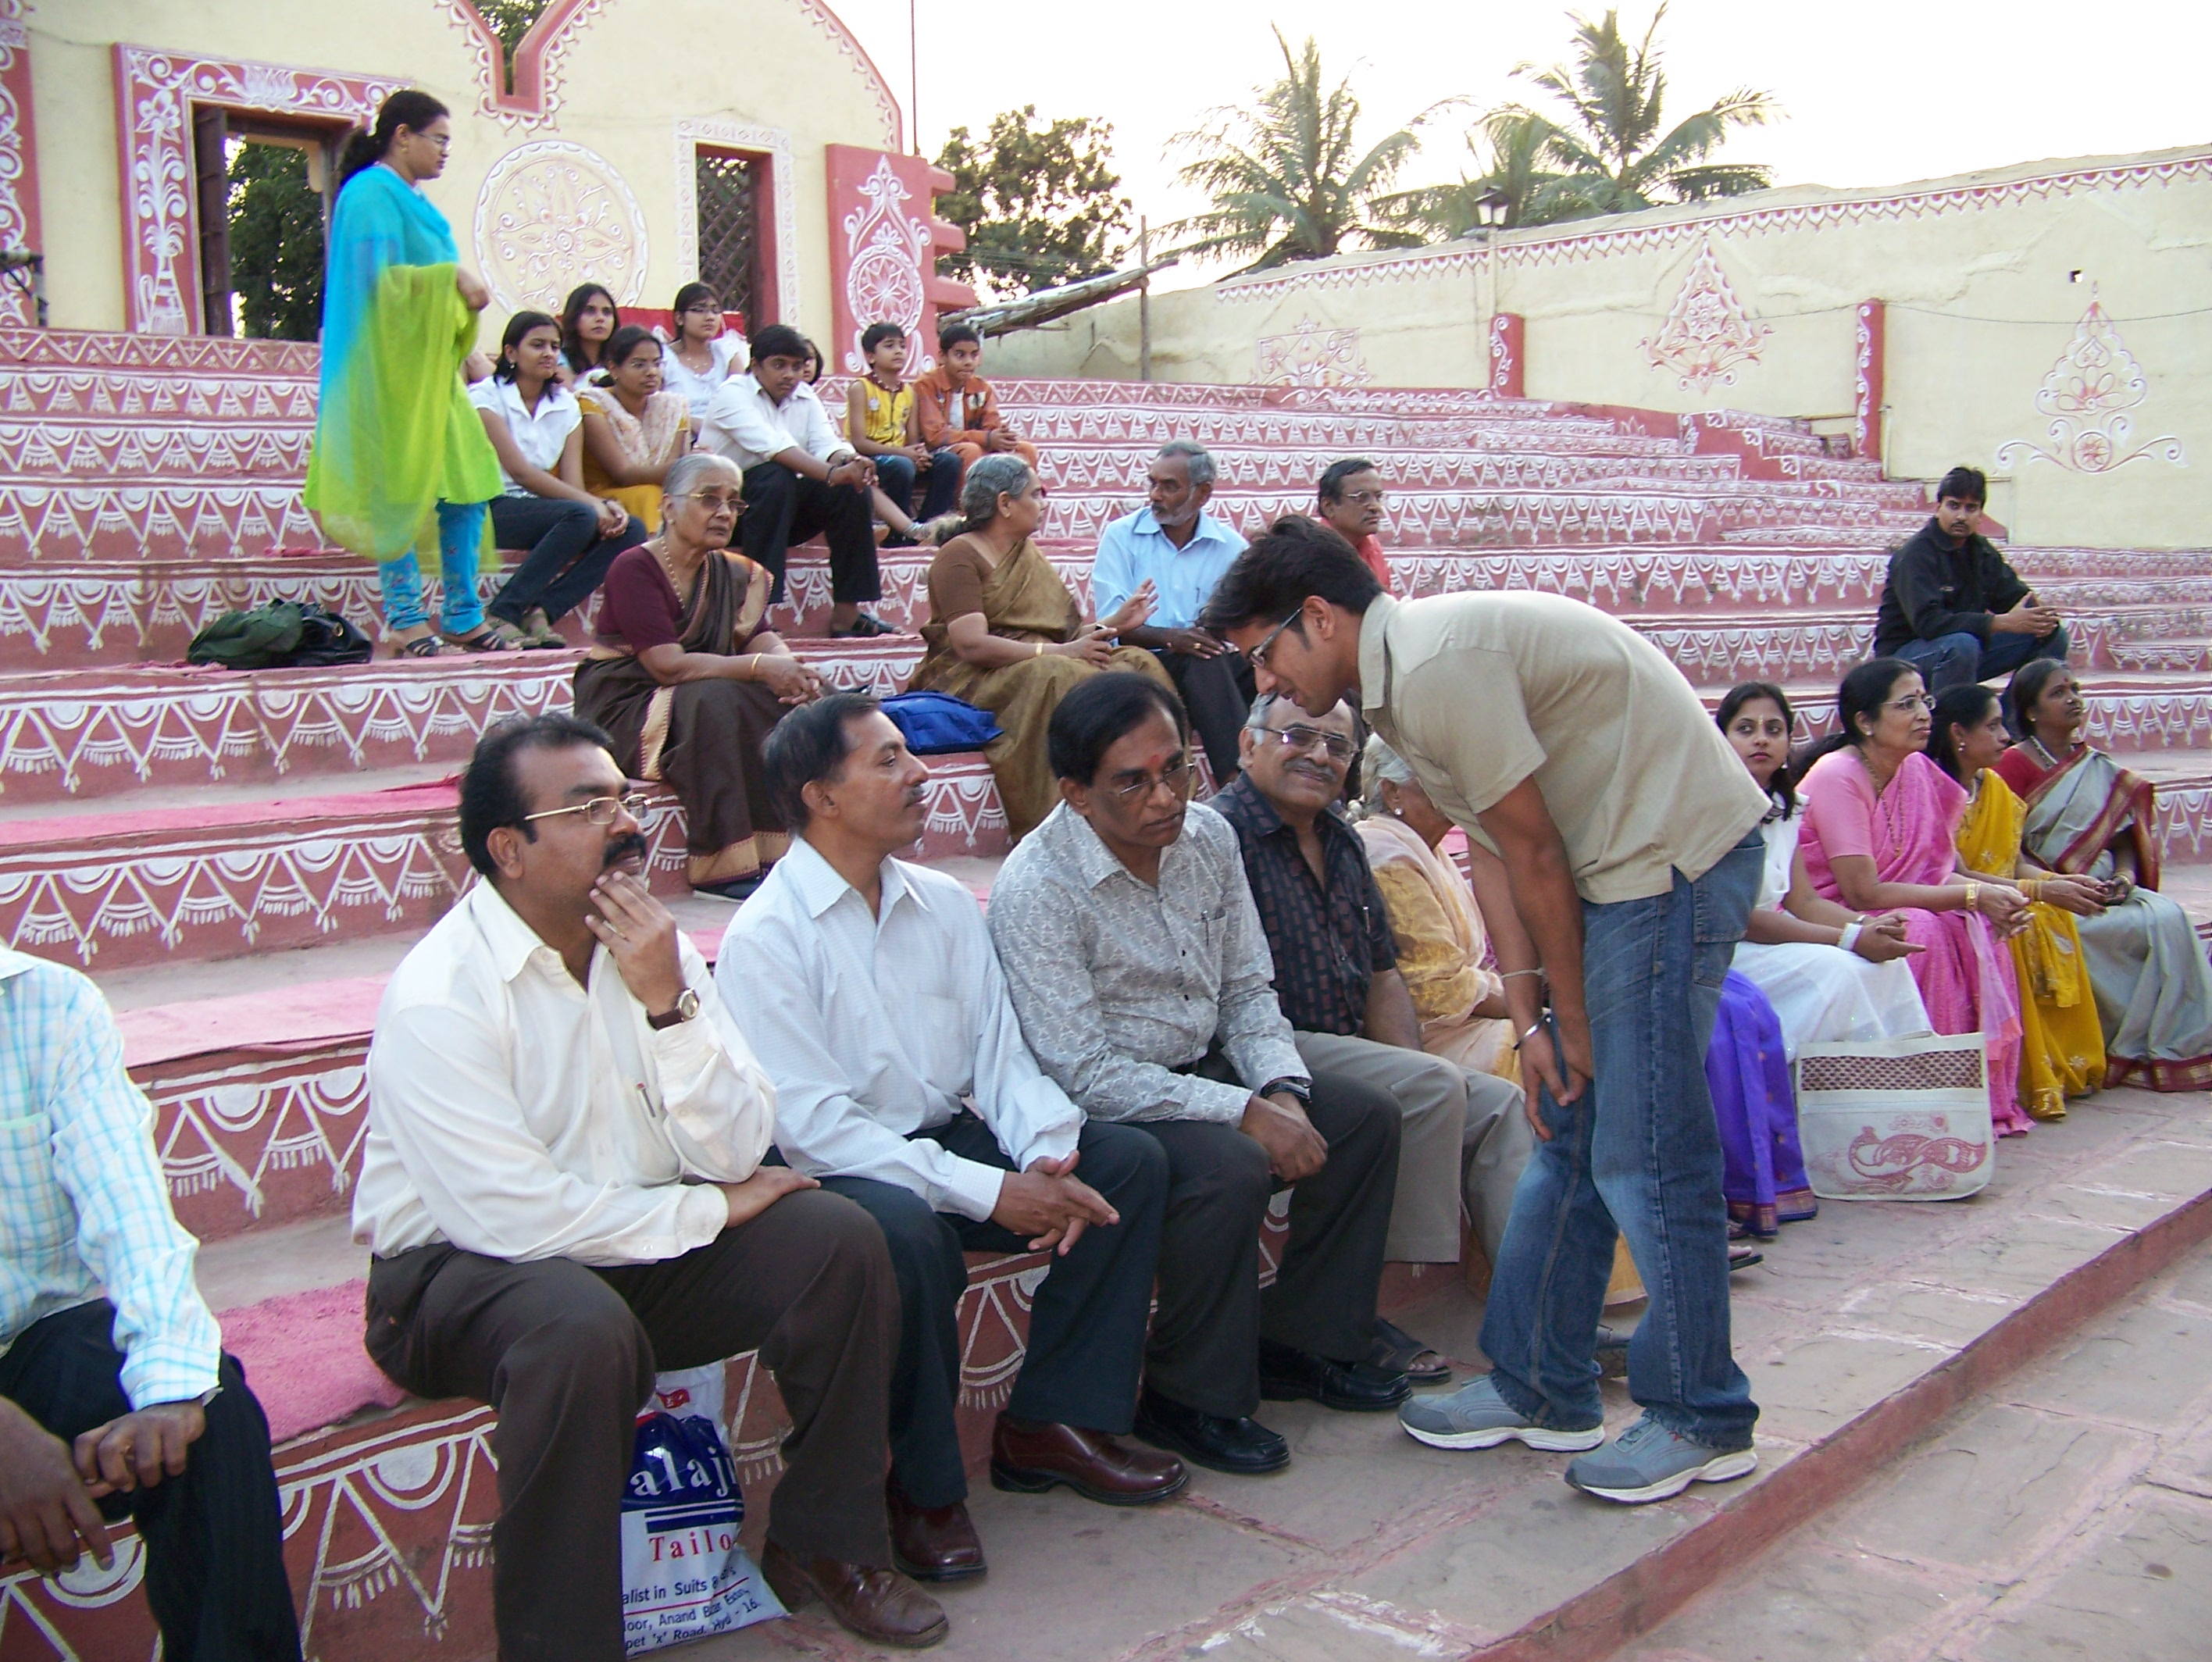 Members of Rafi Foundation, Hyderabad Chapter at PADHARO SE musical show on 25th December 2008